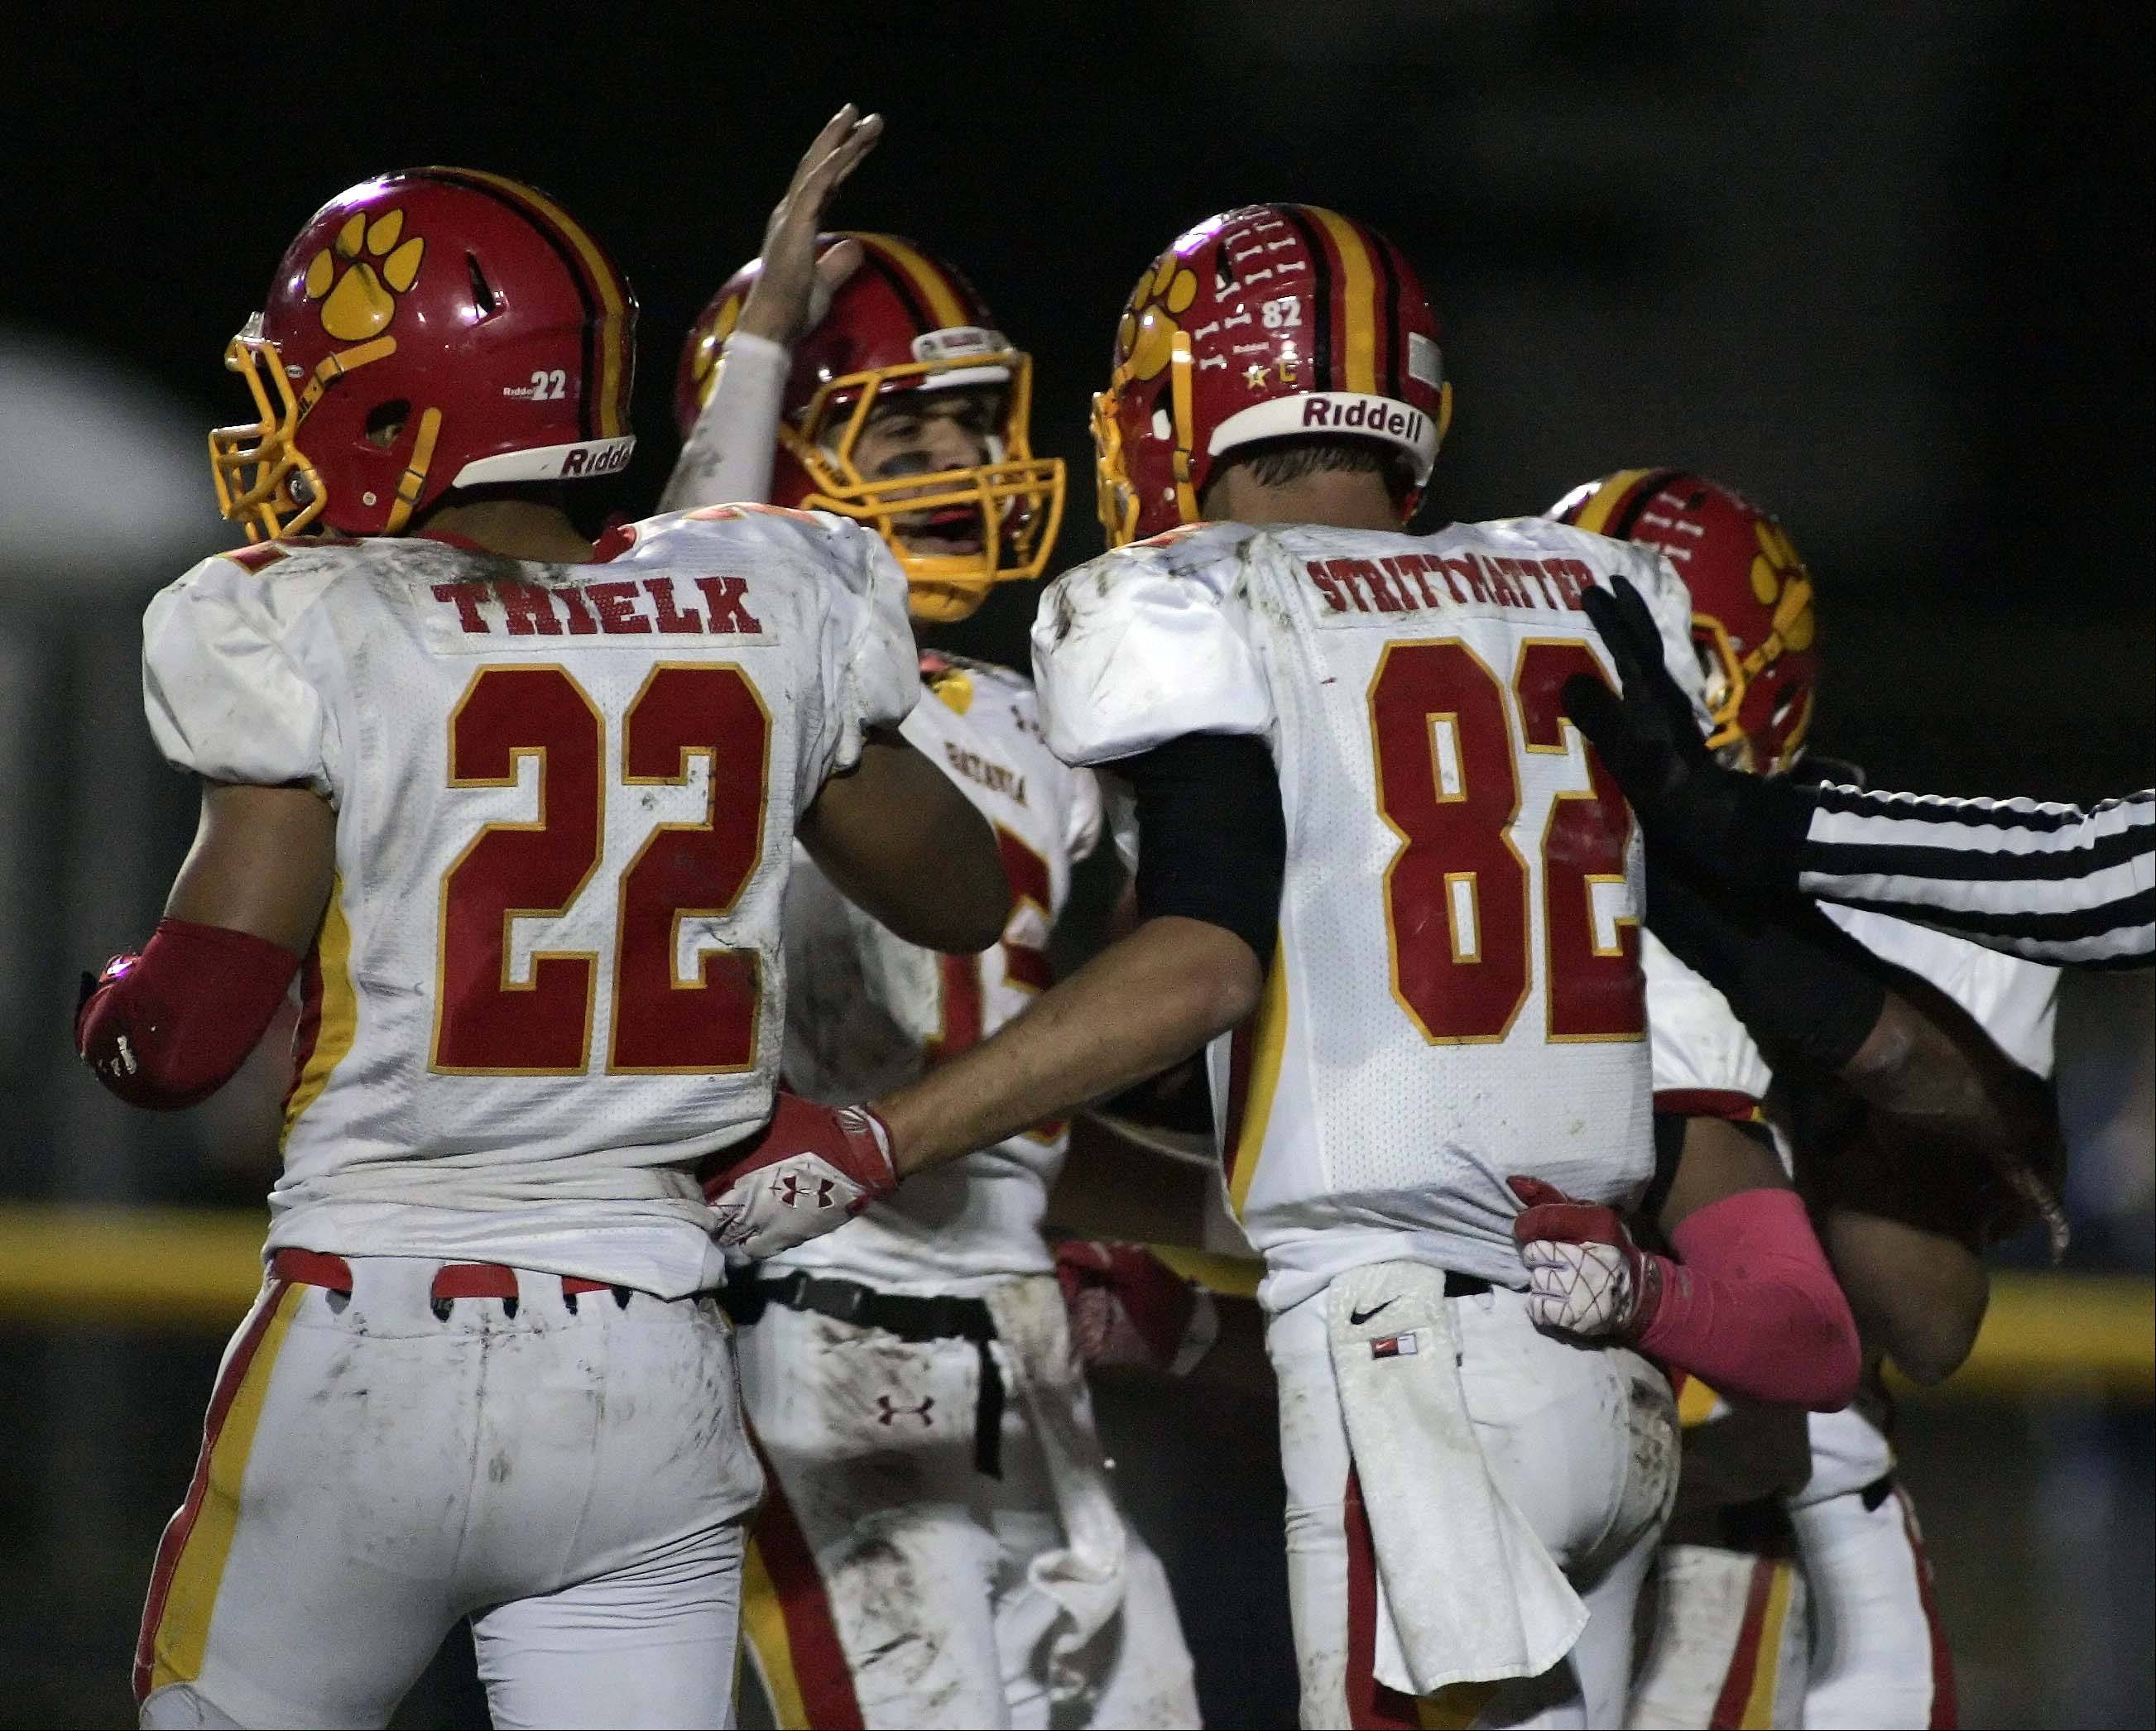 Batavia's Zachary Strittmatter (82) is greeted by his teammates after a touchdown in the second quarter at St. Charles East Friday.